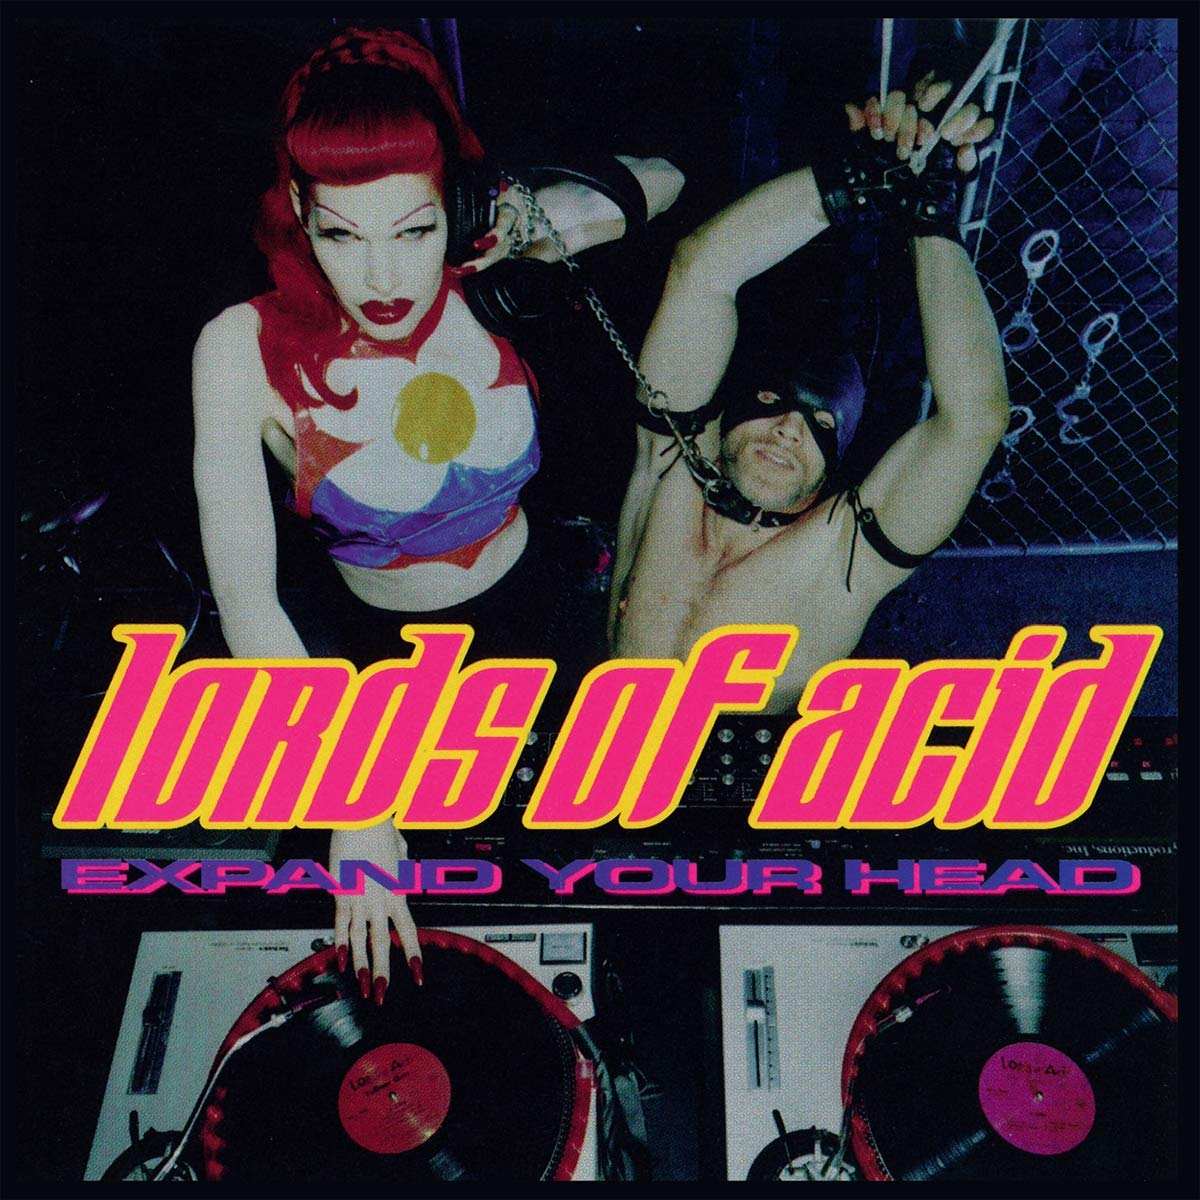 Lords Of Acid – Expand Your Head (2021) [FLAC]